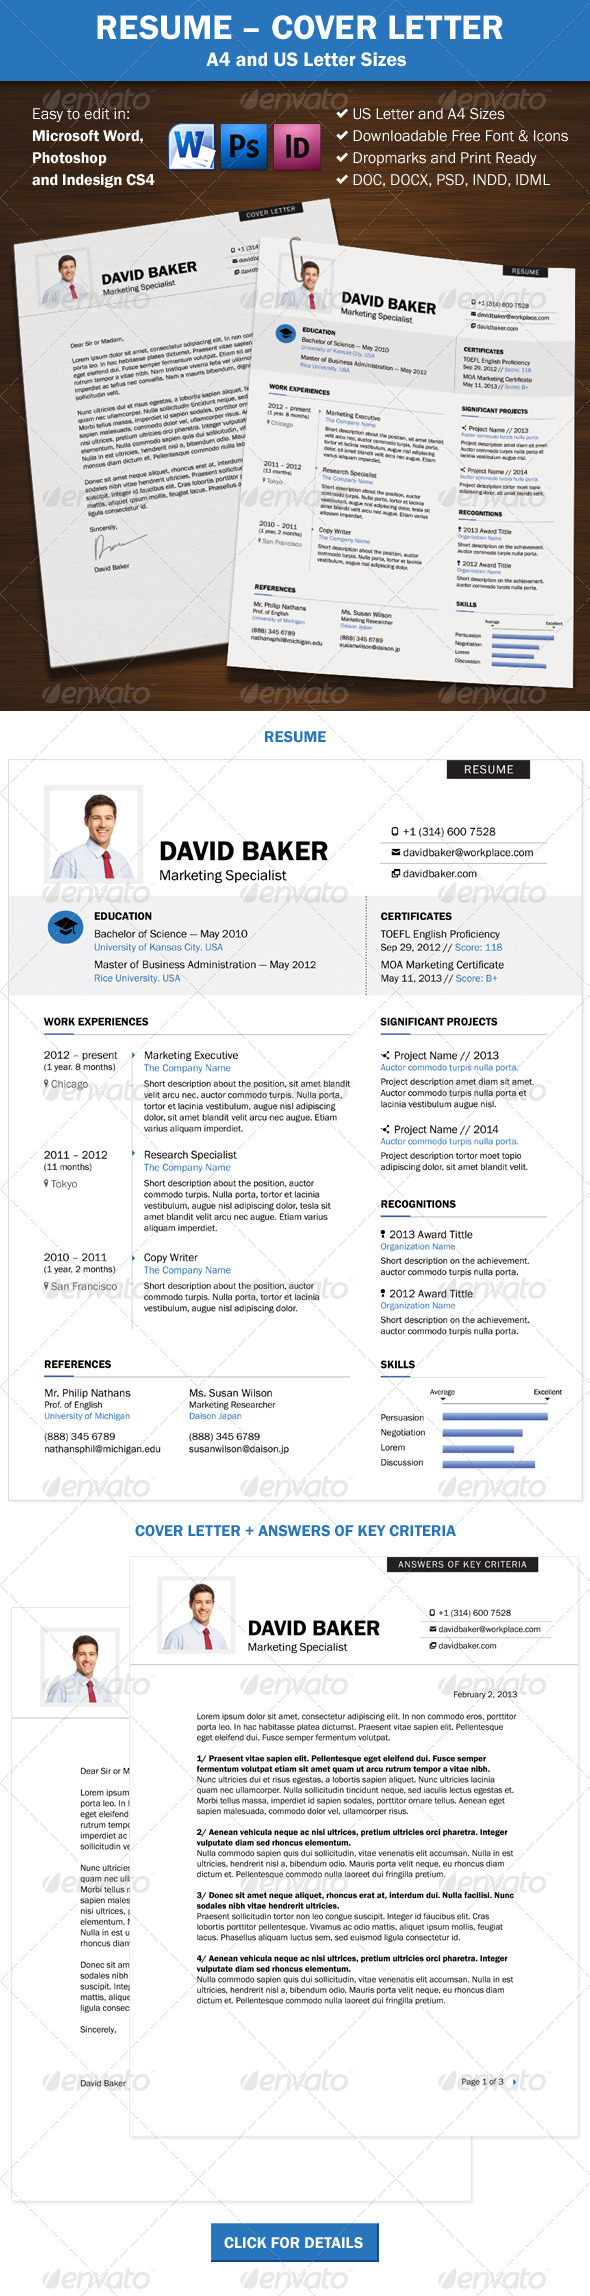 GraphicRiver Resume Cover Letter A4 and US Letter Sizes 6816929